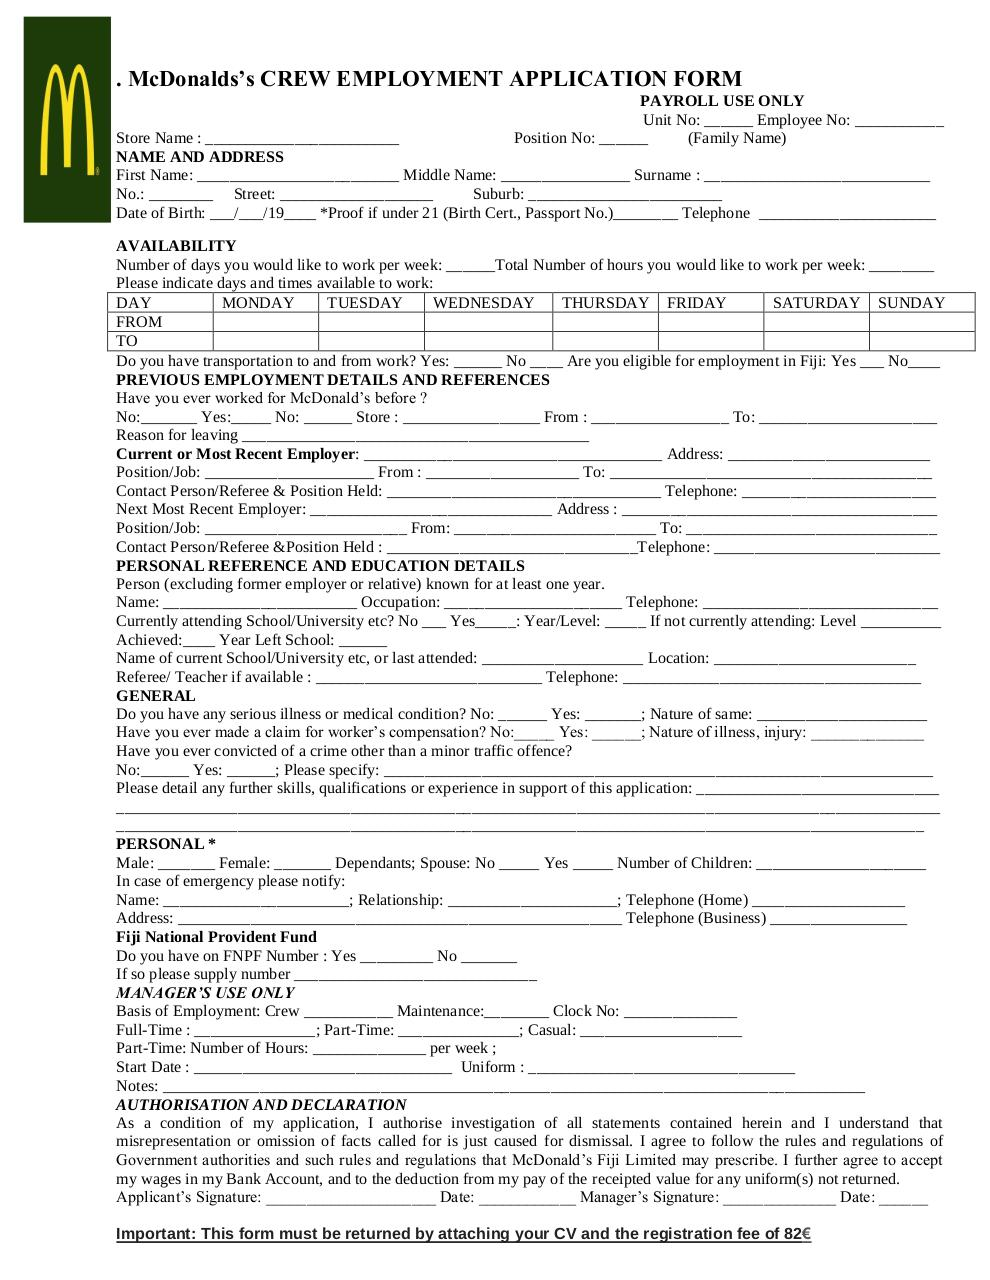 application form mcdonaldsafrica.pdf - page 1/2